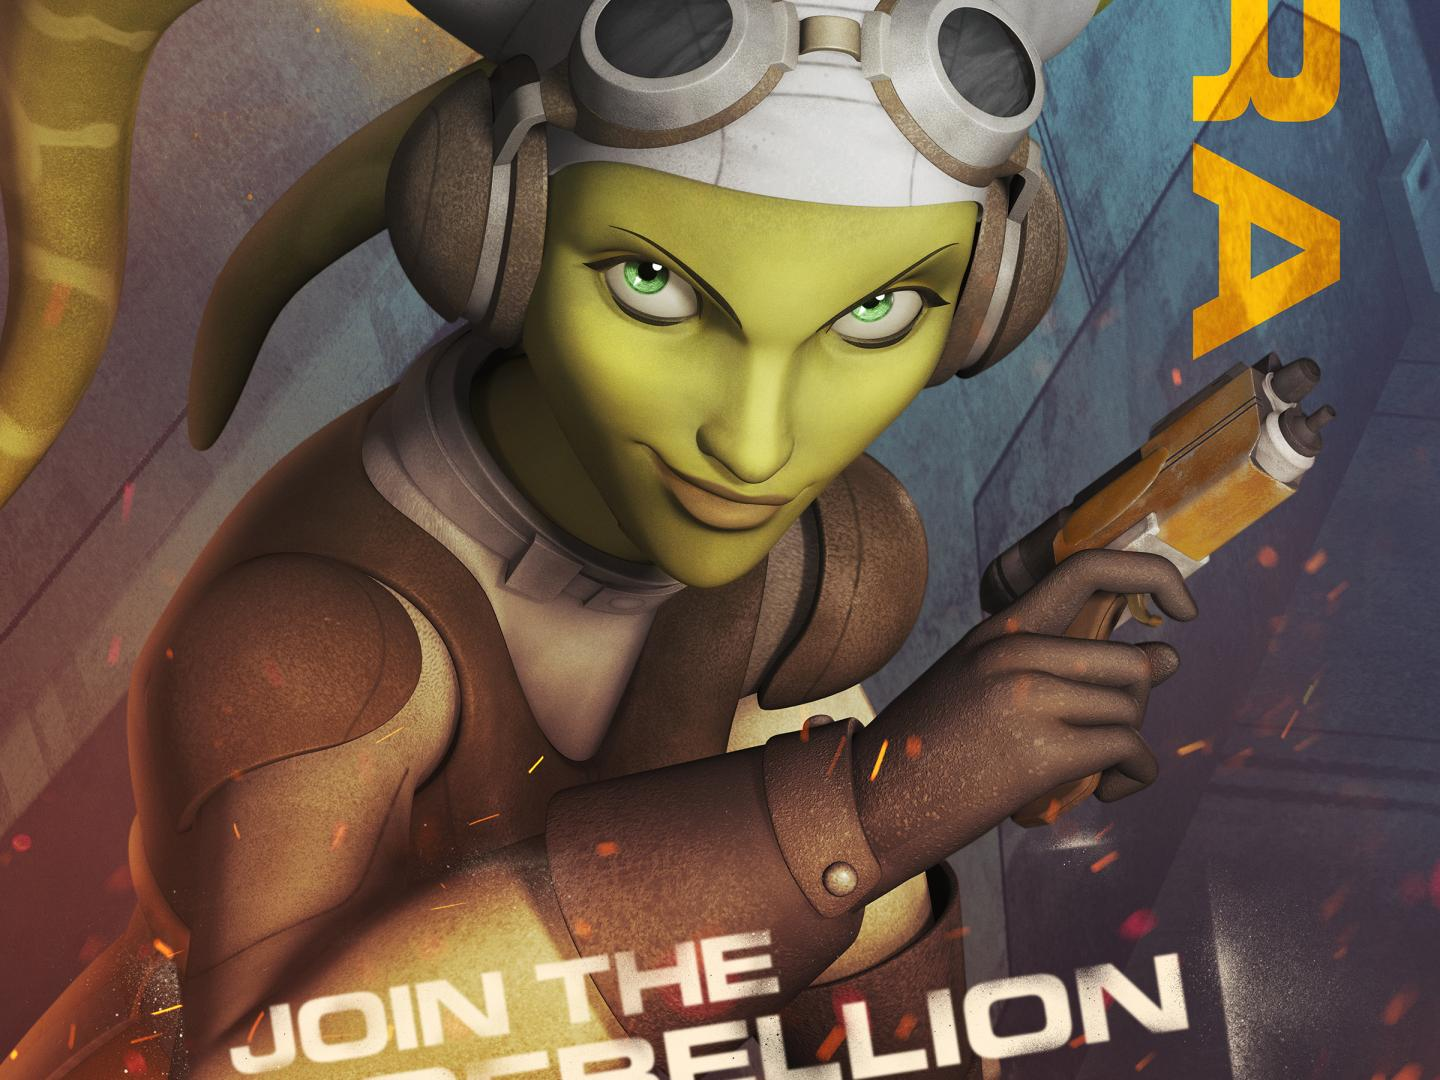 Image for Character Hera